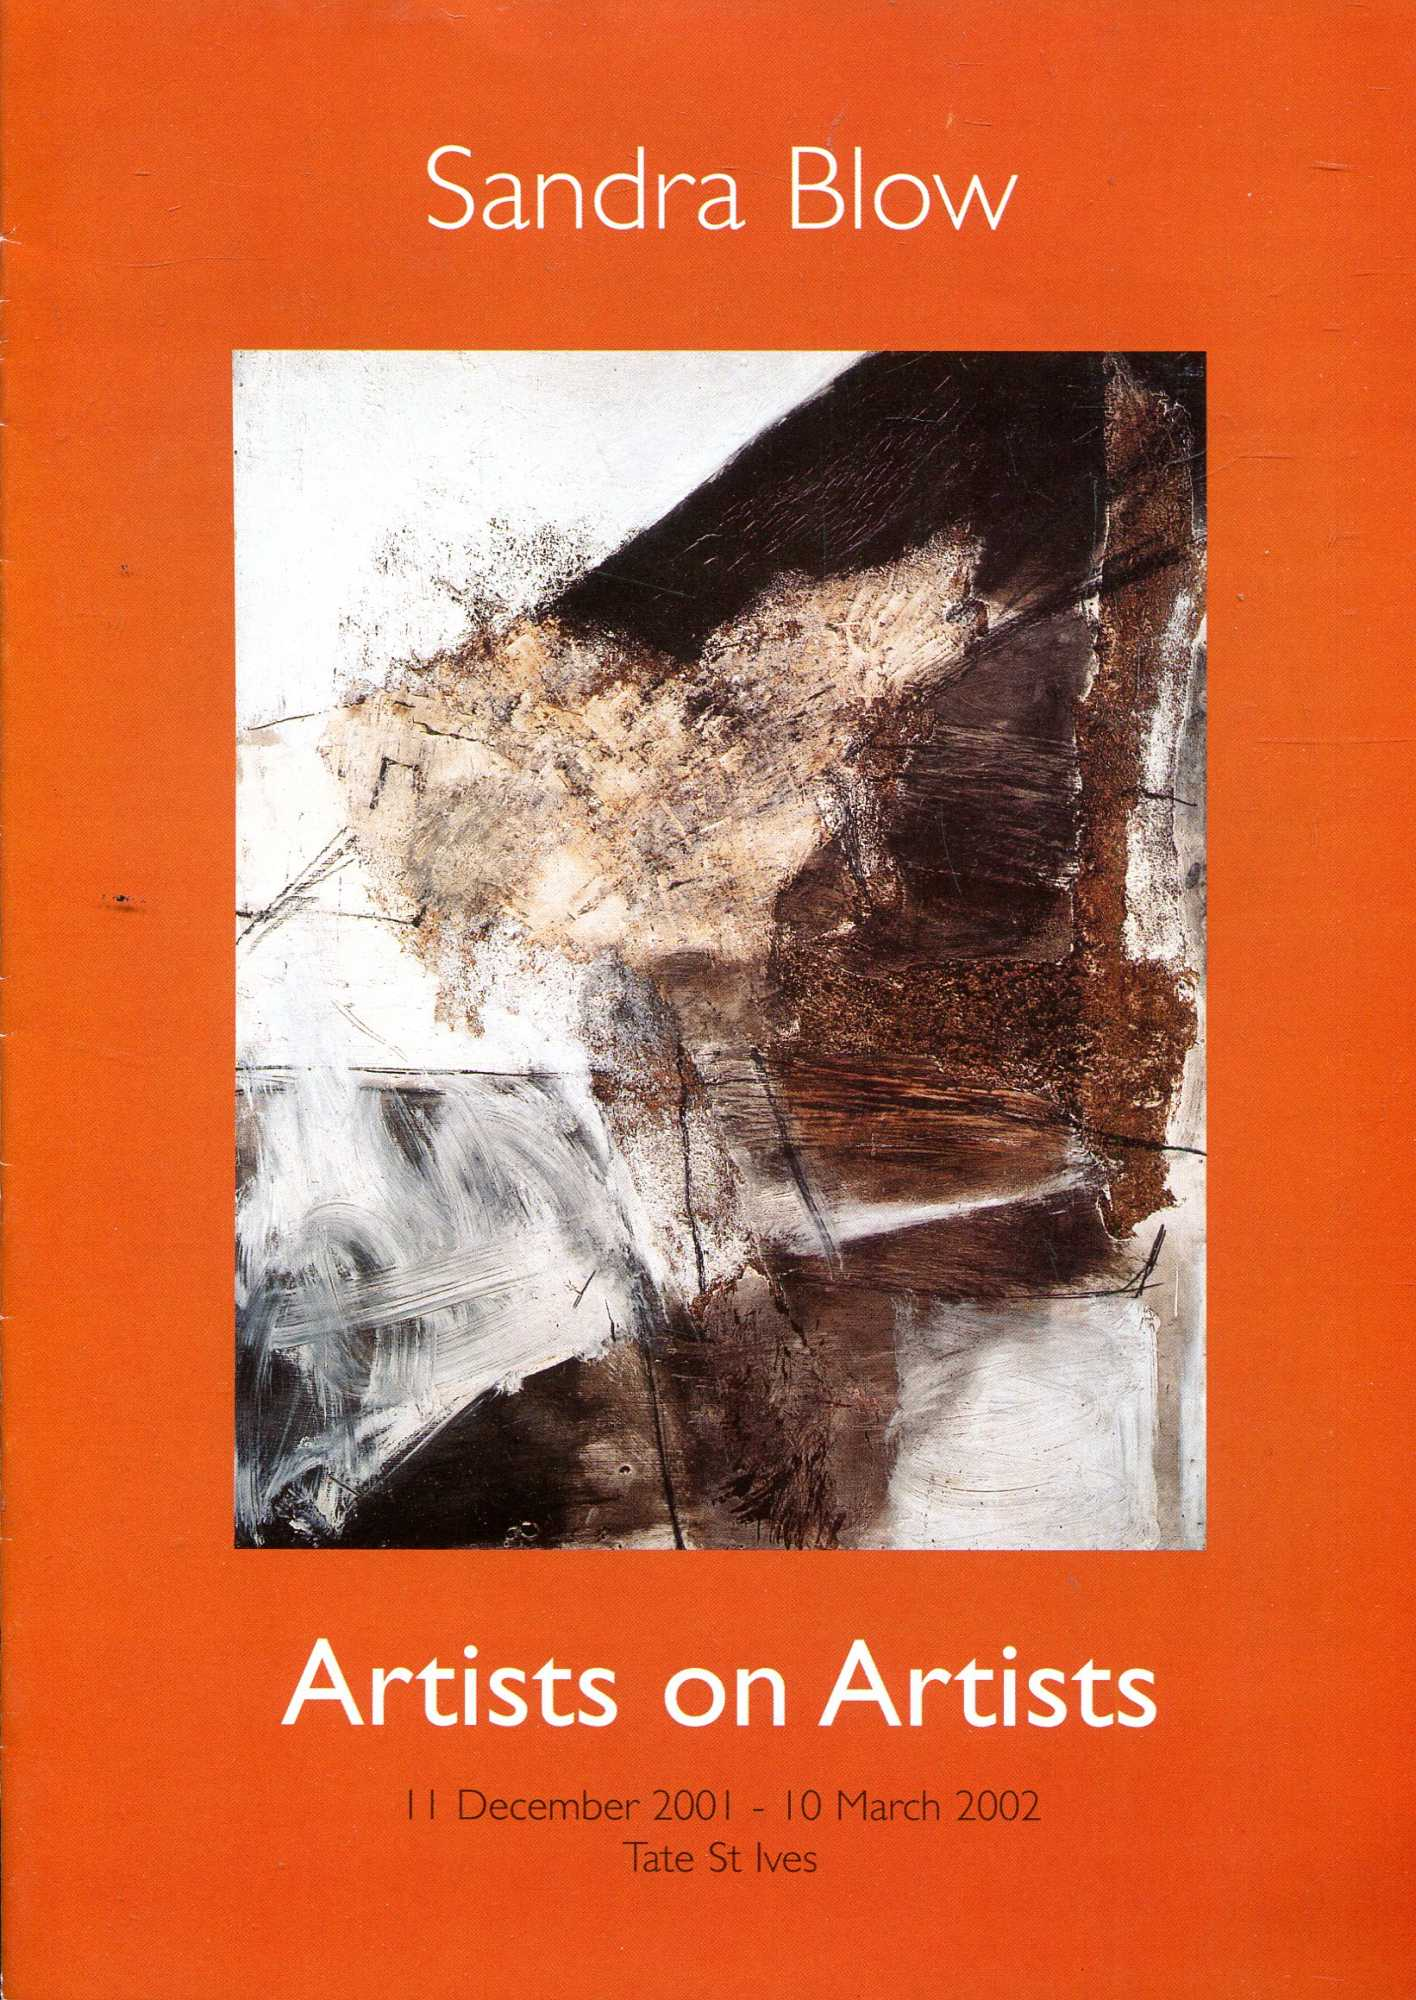 Image for Sandra Blow : Artists on Artists, 11 Dec 2001 - 10 March 2002, Tate St Ives